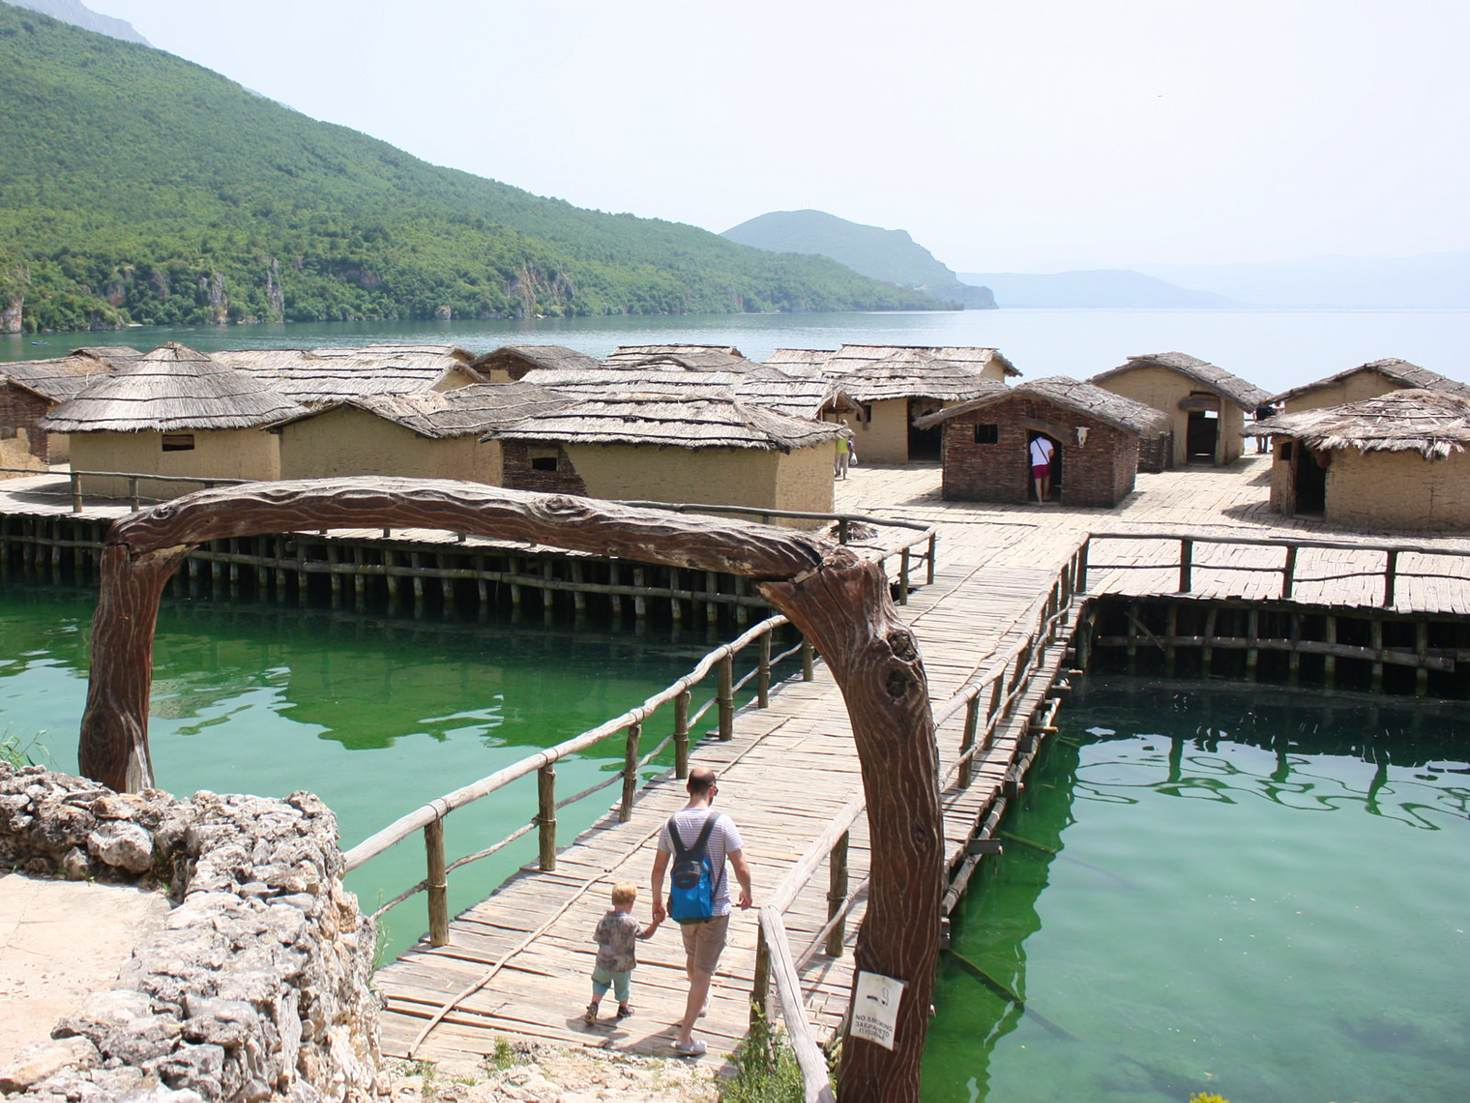 The Museum on Water in Lake Ohrid's Bay of Bones © Lorna Parkes / Lonely Planet